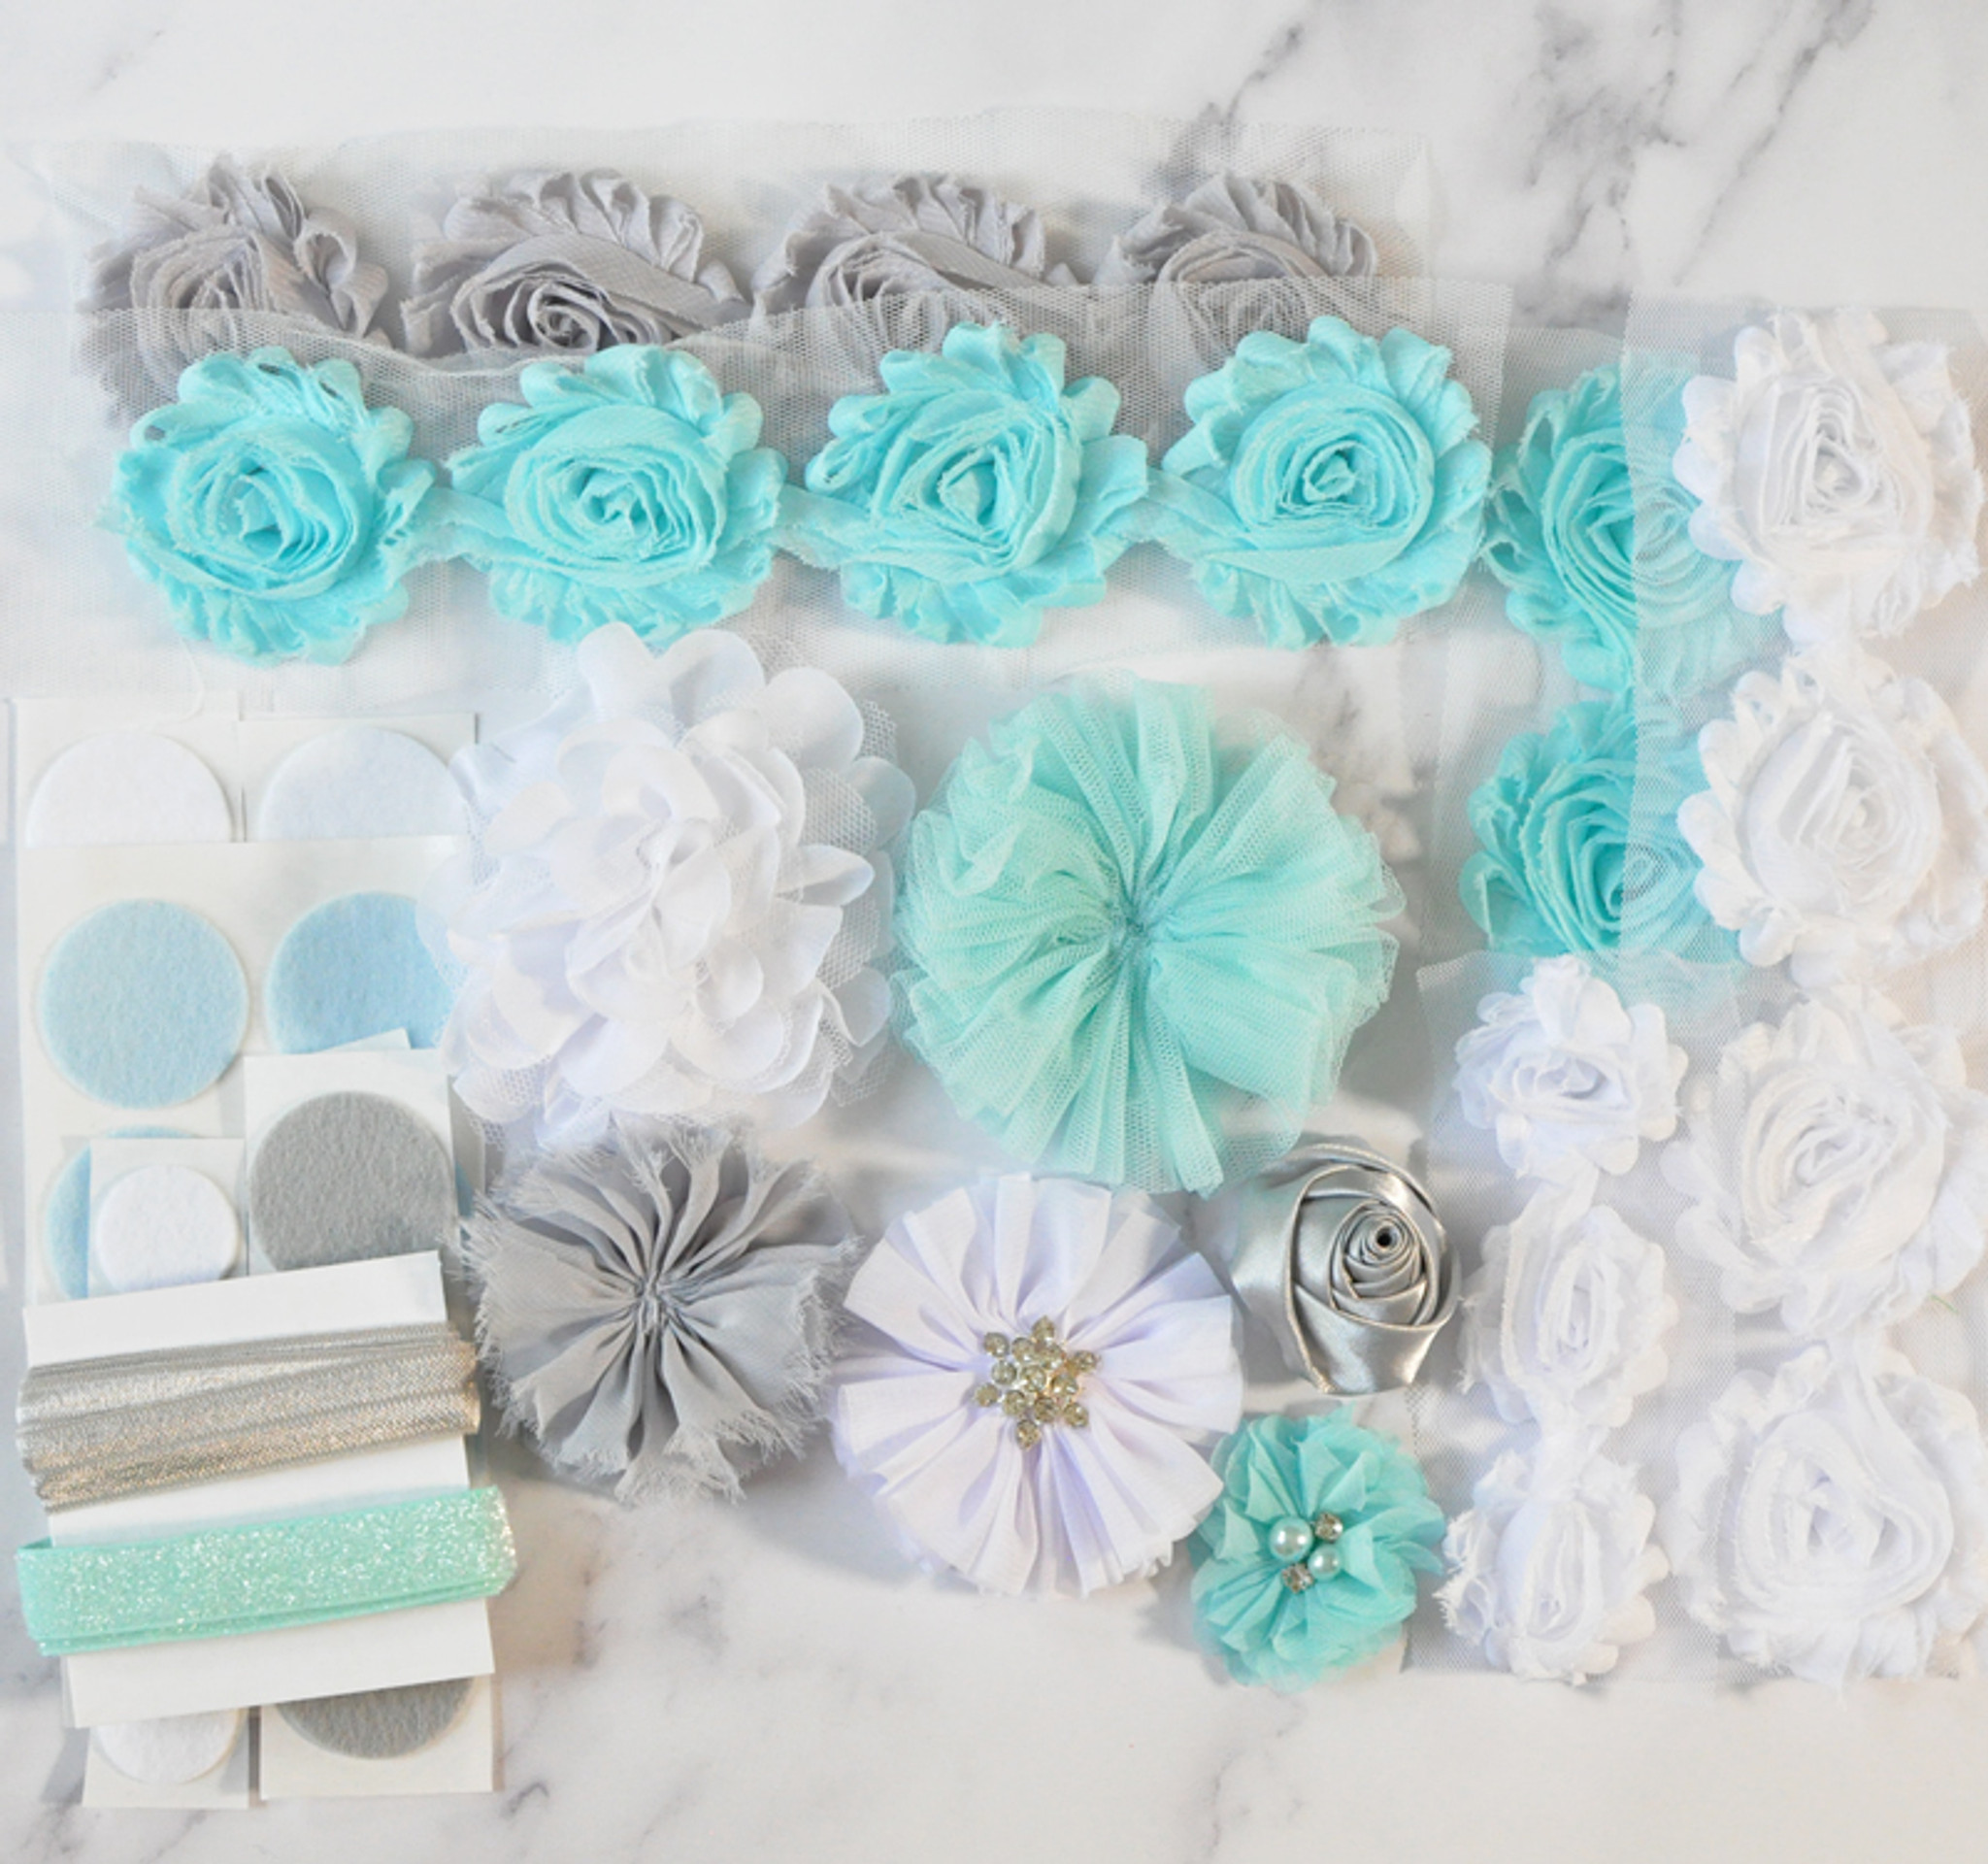 Icy Blue shabby flower headband kit